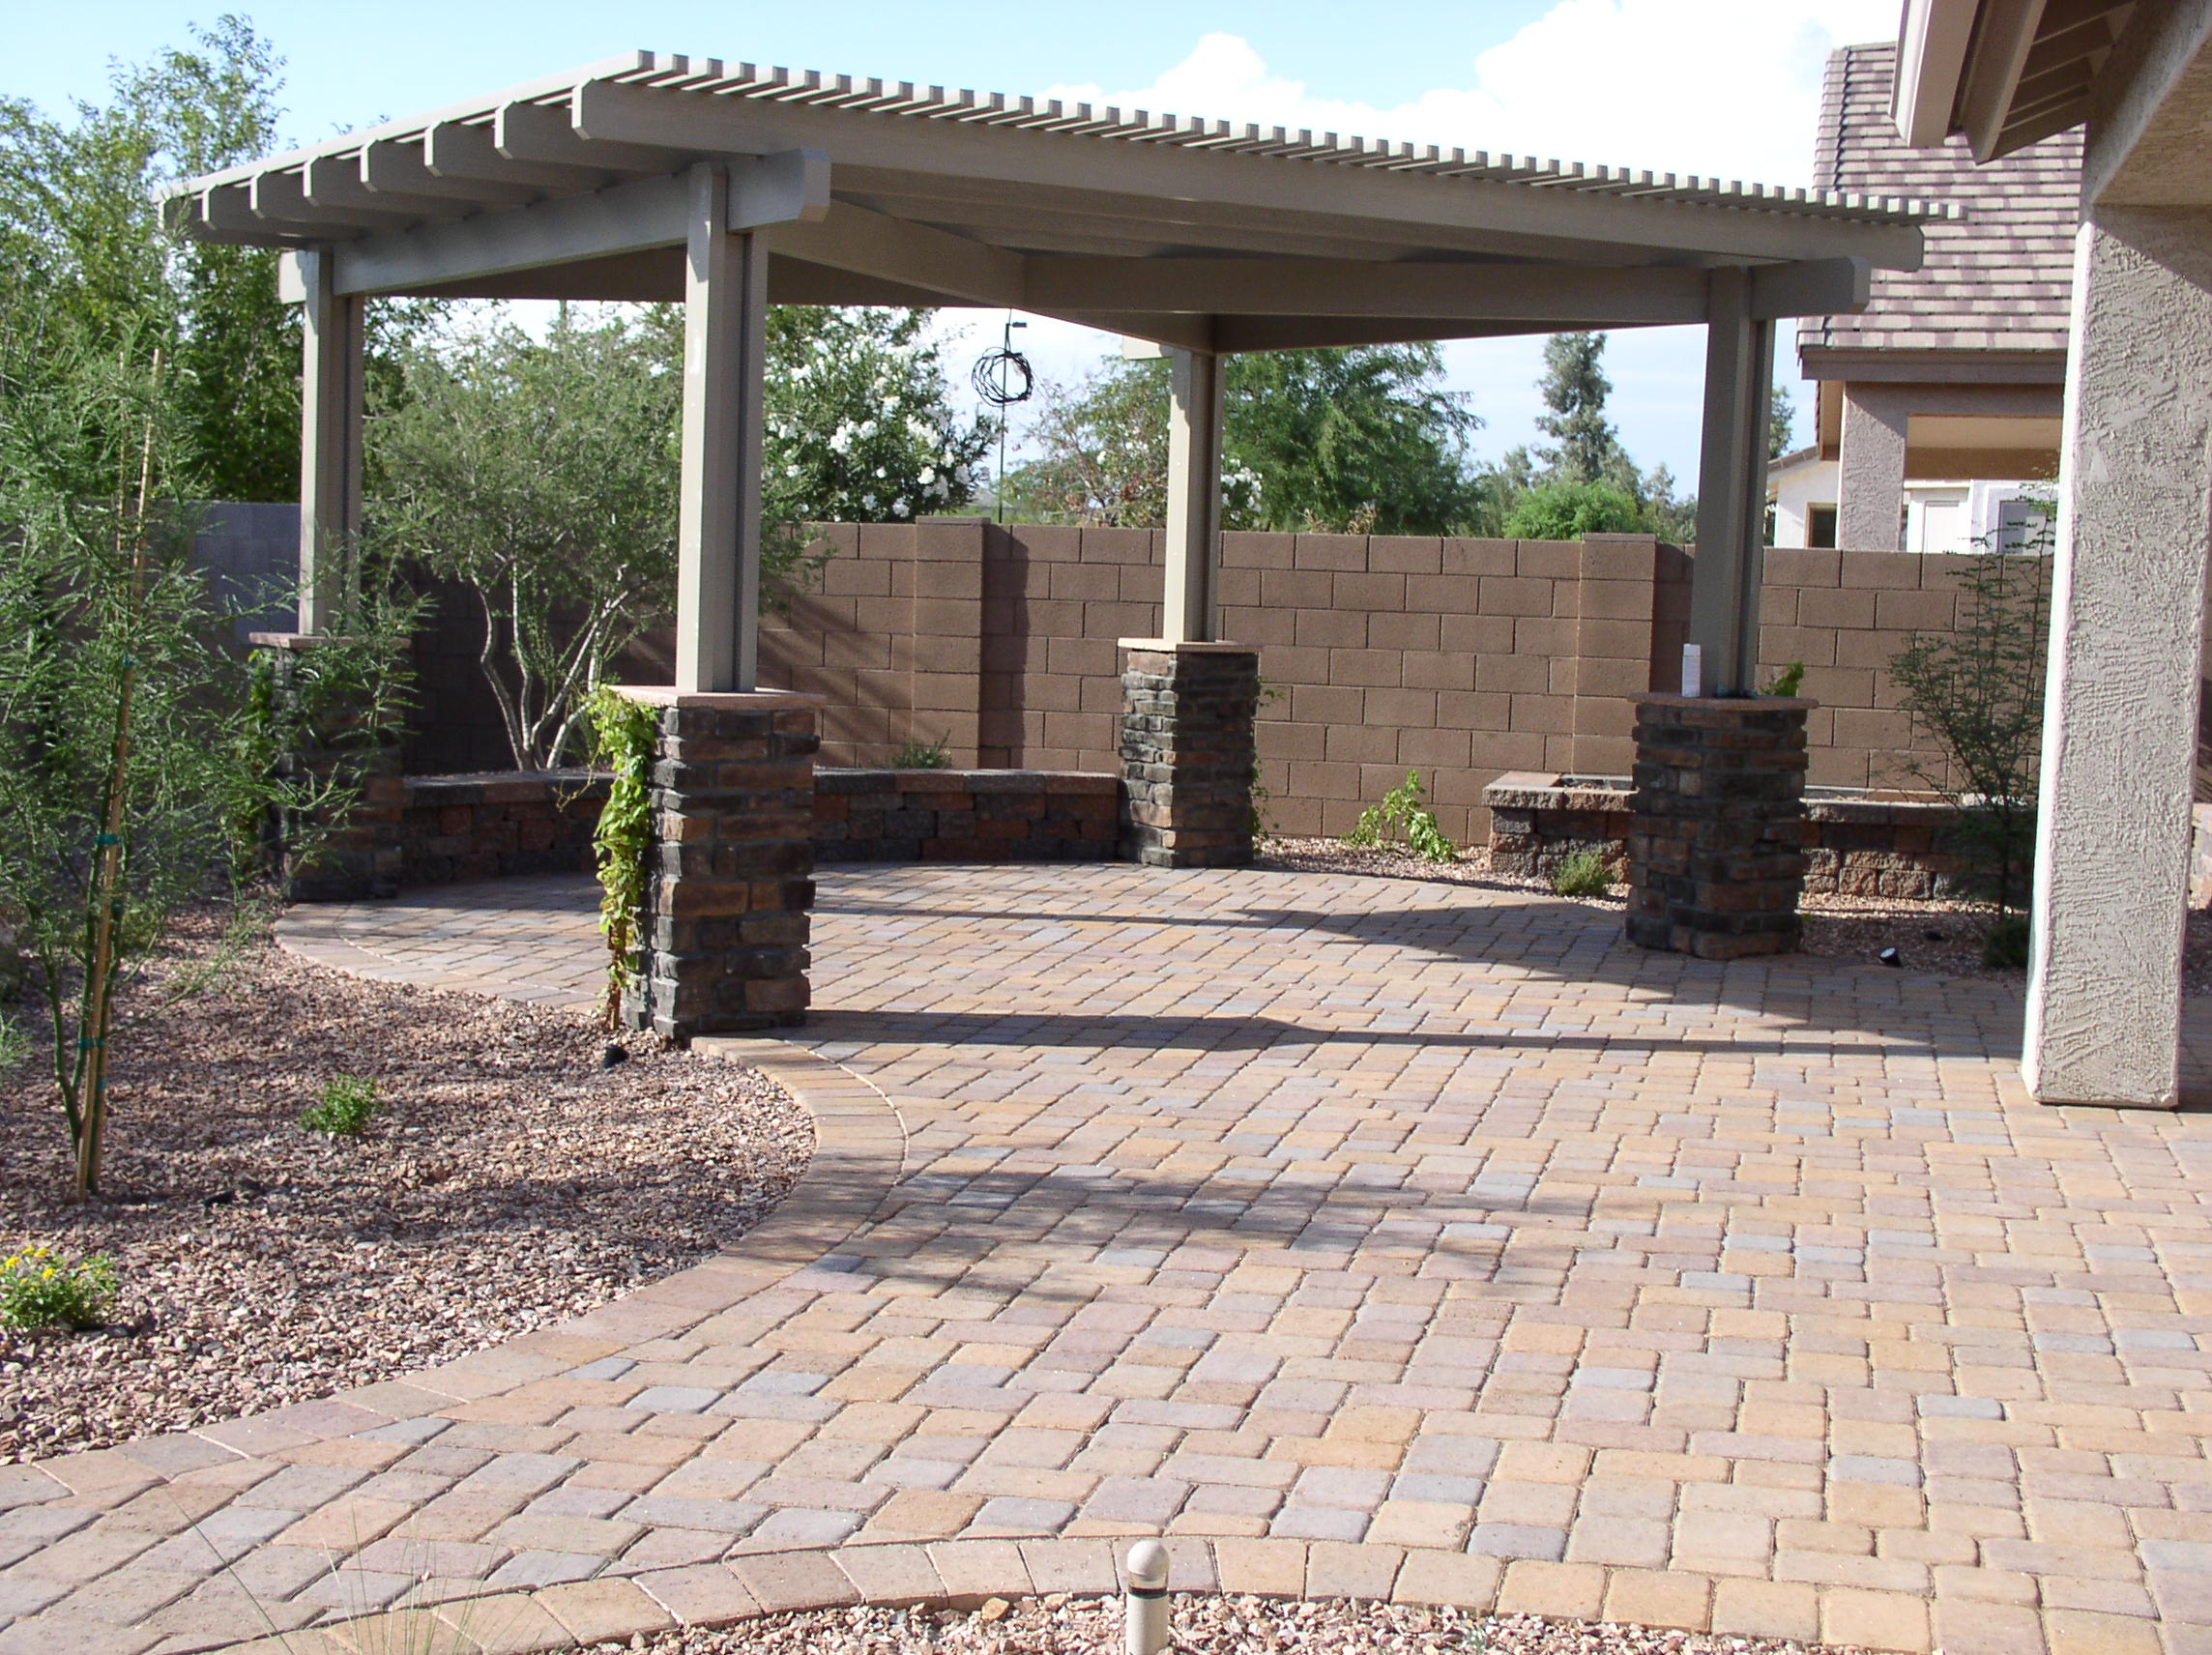 Paver Designs and Paver Ideas for Your Backyard Patios on Brick Paver Patio Designs id=25251